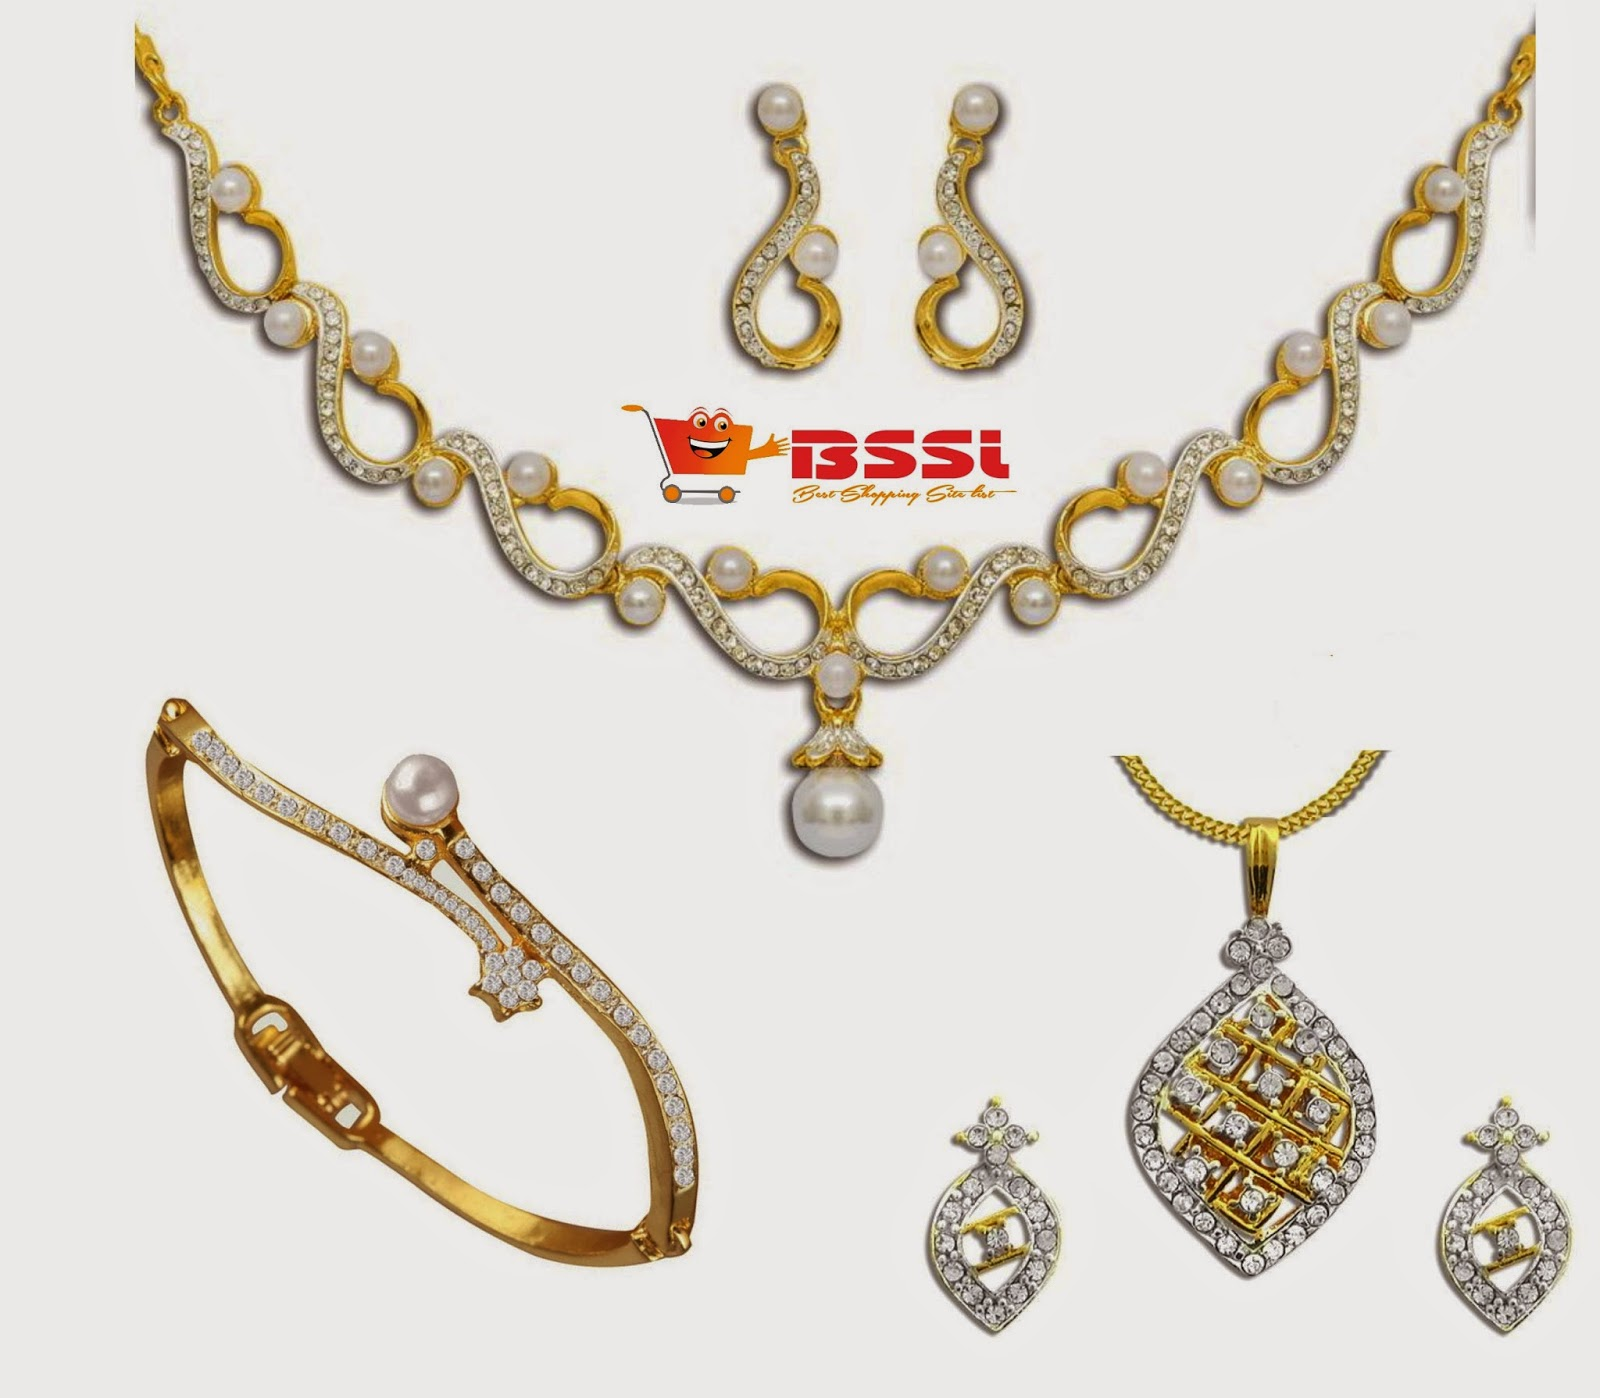 featuring and jewellery dubai shopping guide international brands local available jewellers